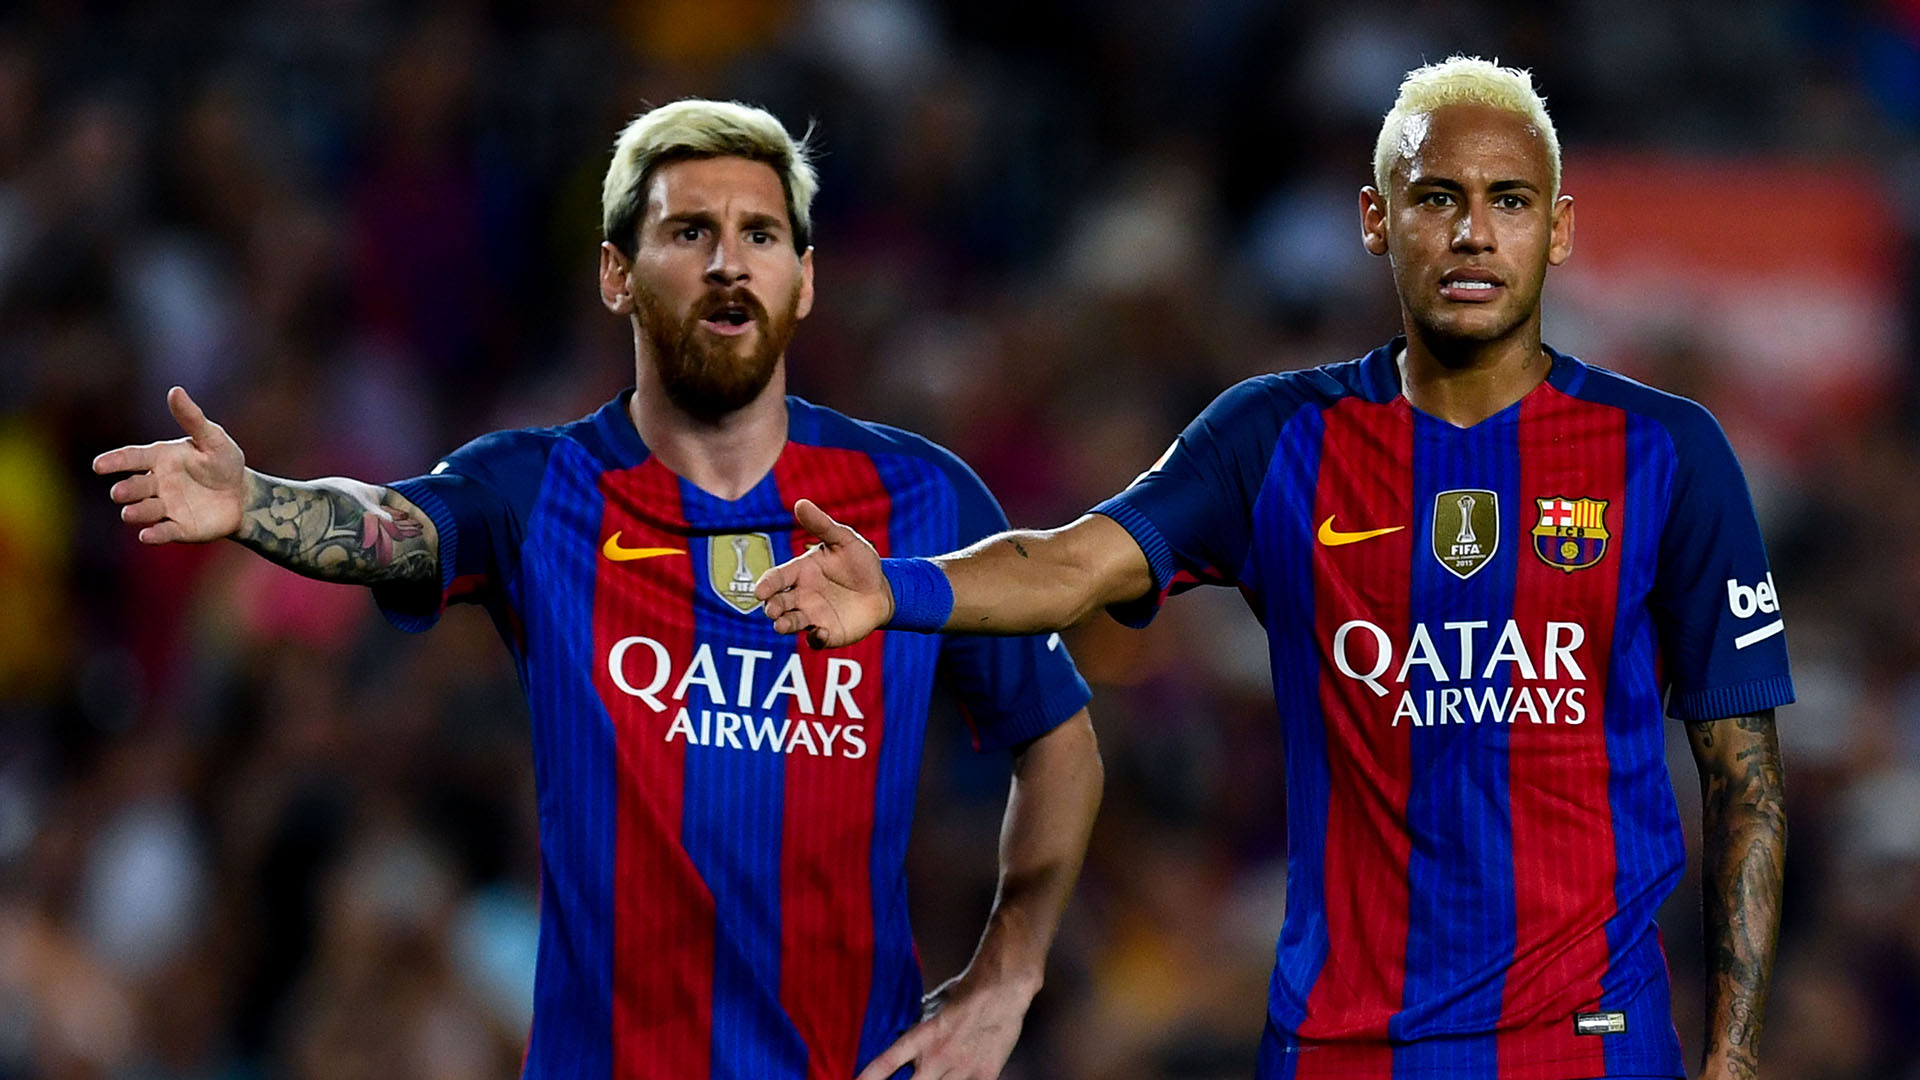 http://images.performgroup.com/di/library/GOAL_INTERNATIONAL/6c/c4/lionel-messi-neymar-barcelona_1os7jd0a5bycf1pw0tyaccp9kp.jpg?t=695798049&w=620&h=430